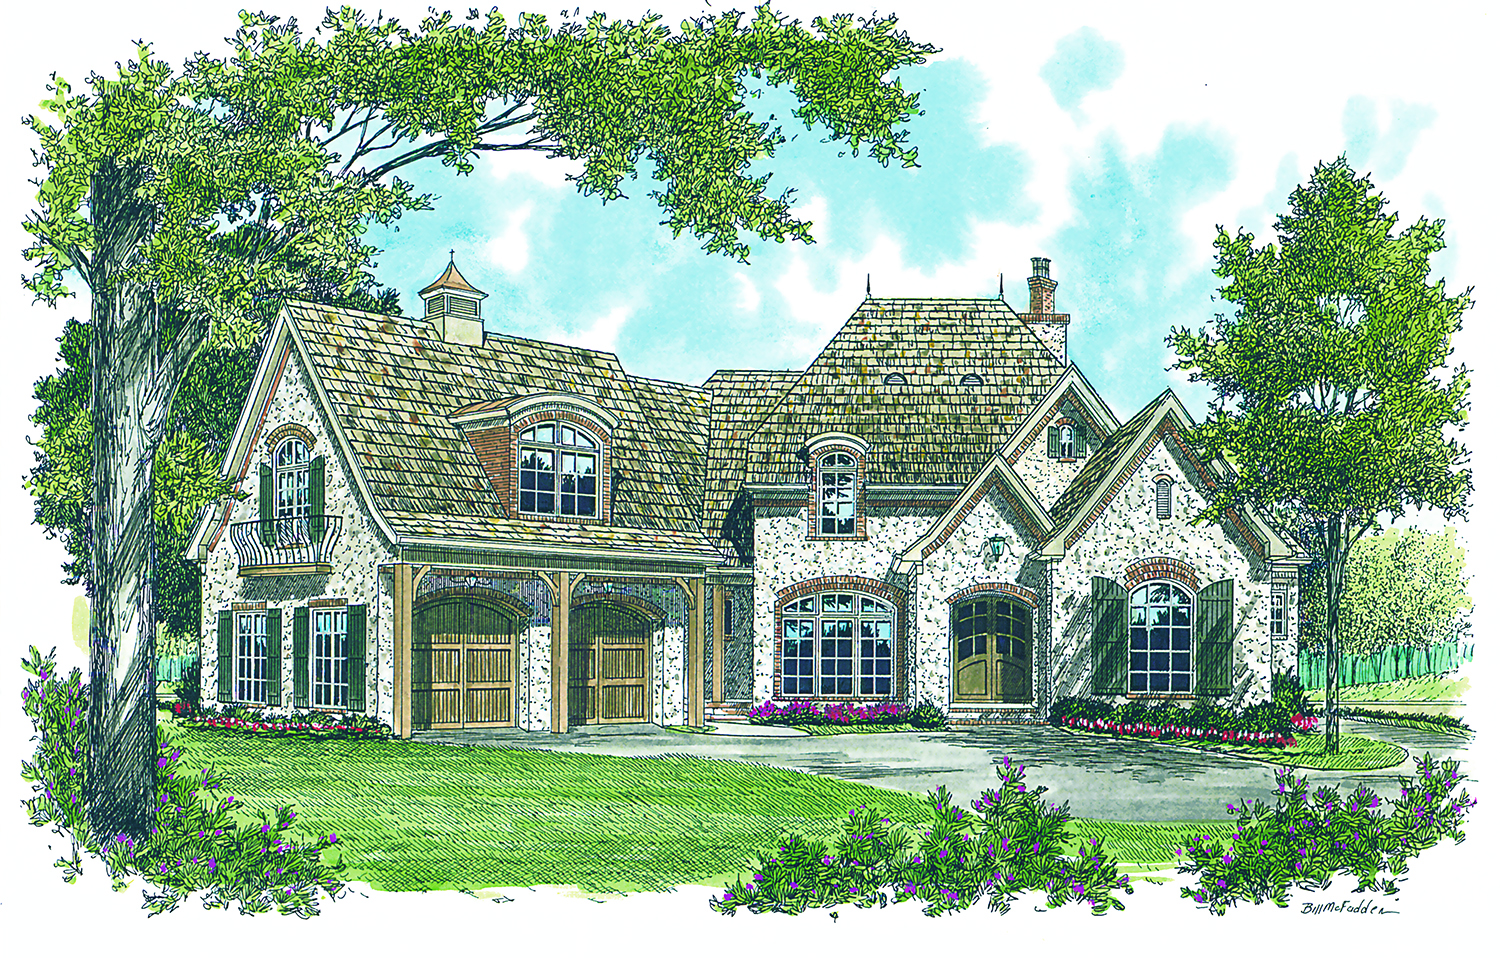 4731 sq ft european house plan 180 1013 4 bedrm home for European home collection